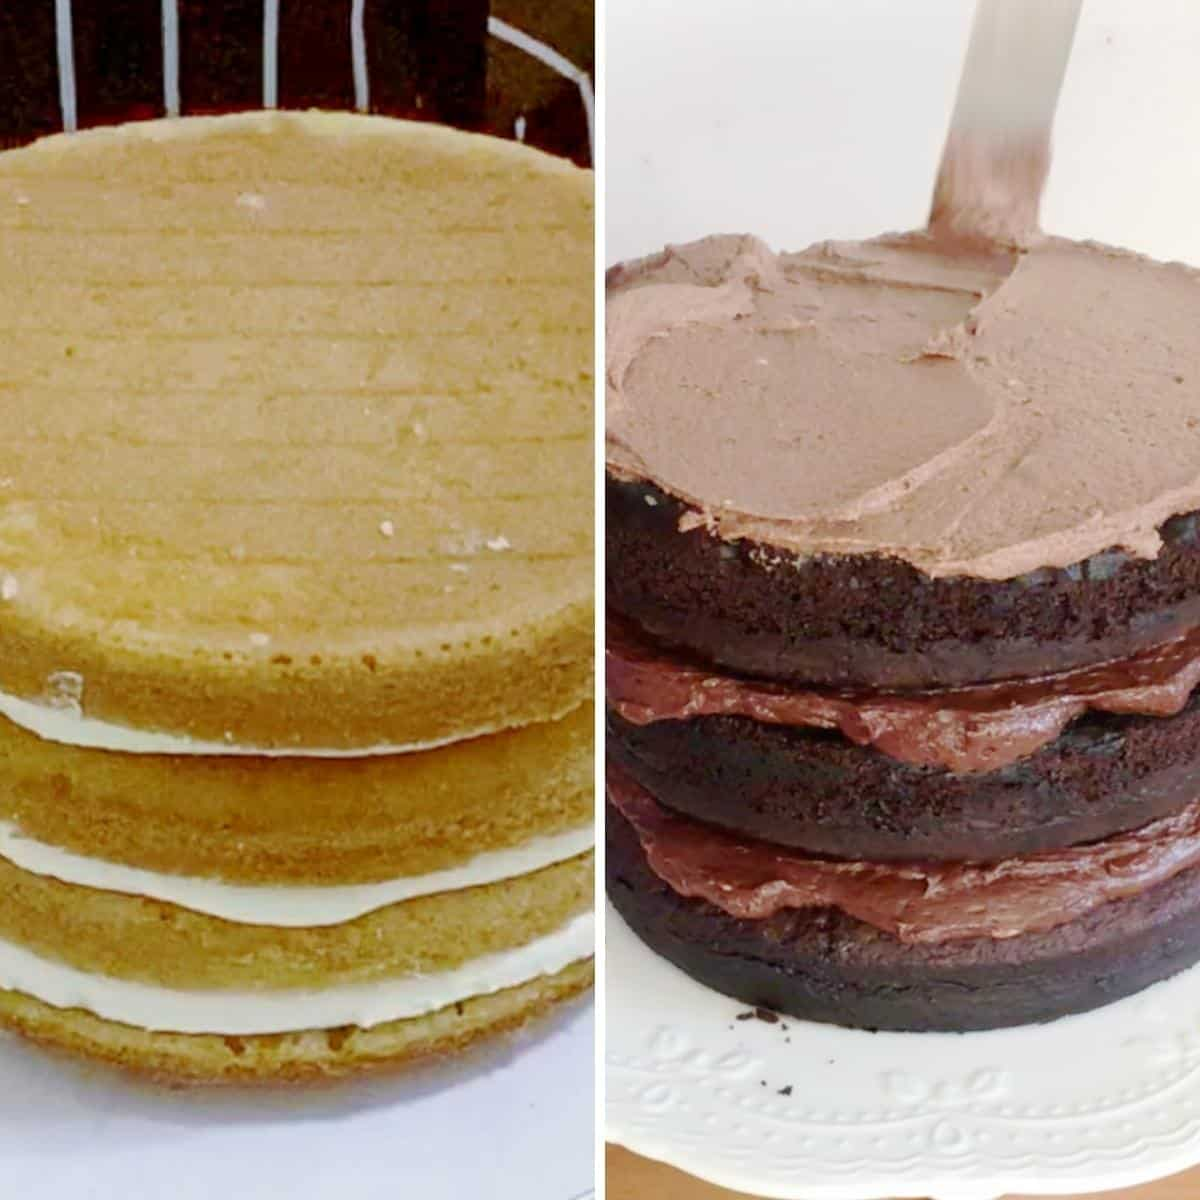 Frosting a vanilla and chocolate cake.